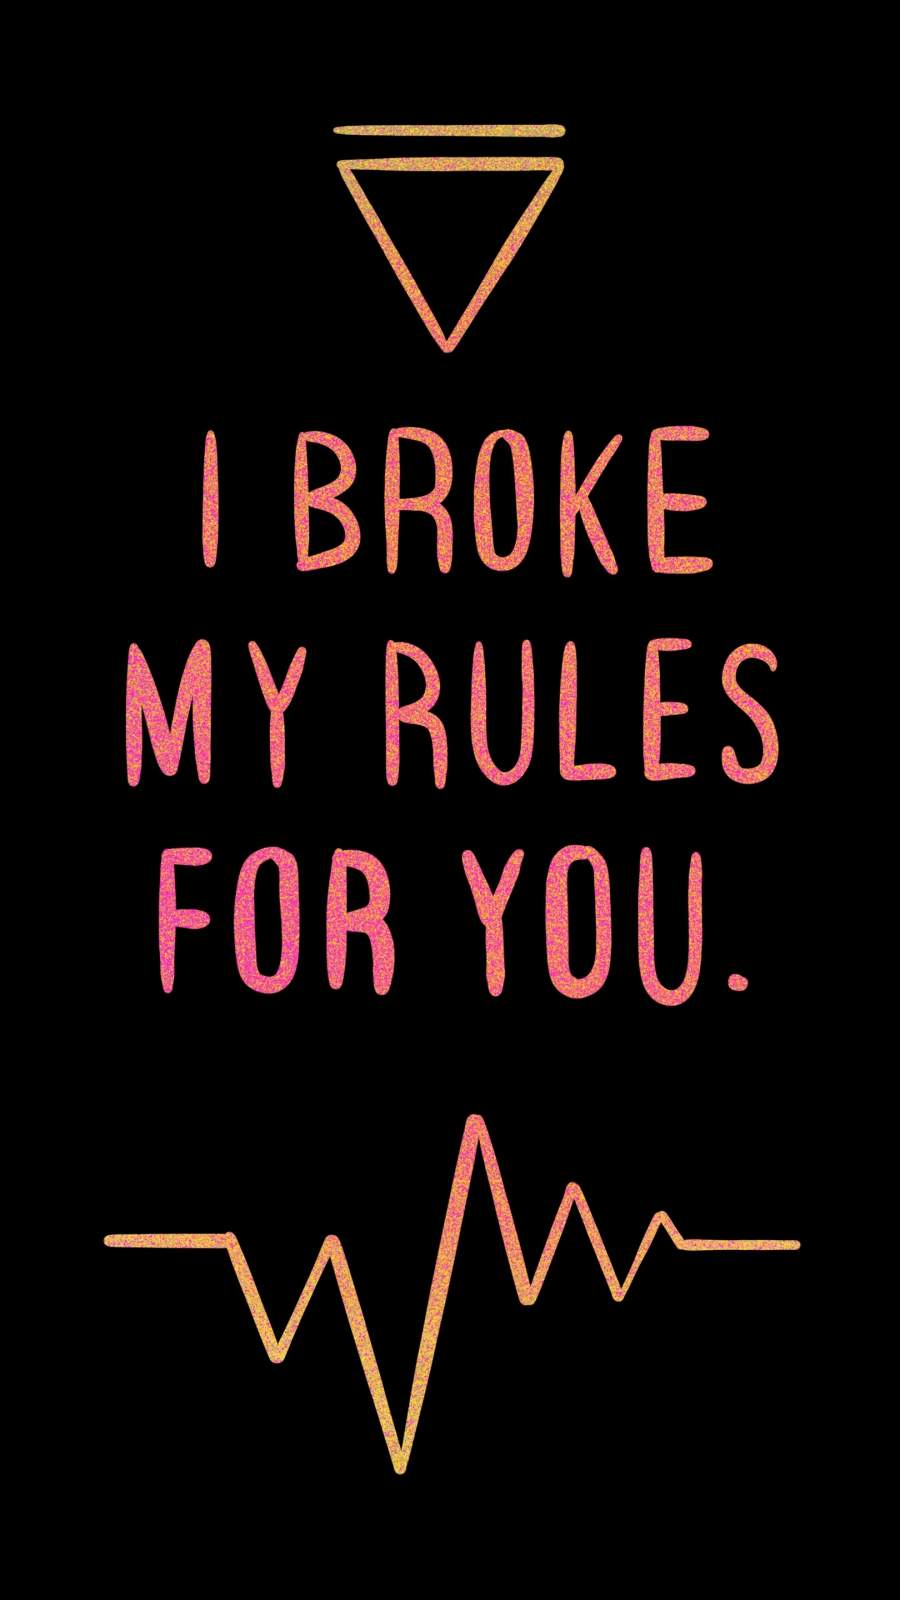 I Broke My Rules For You iPhone Wallpaper